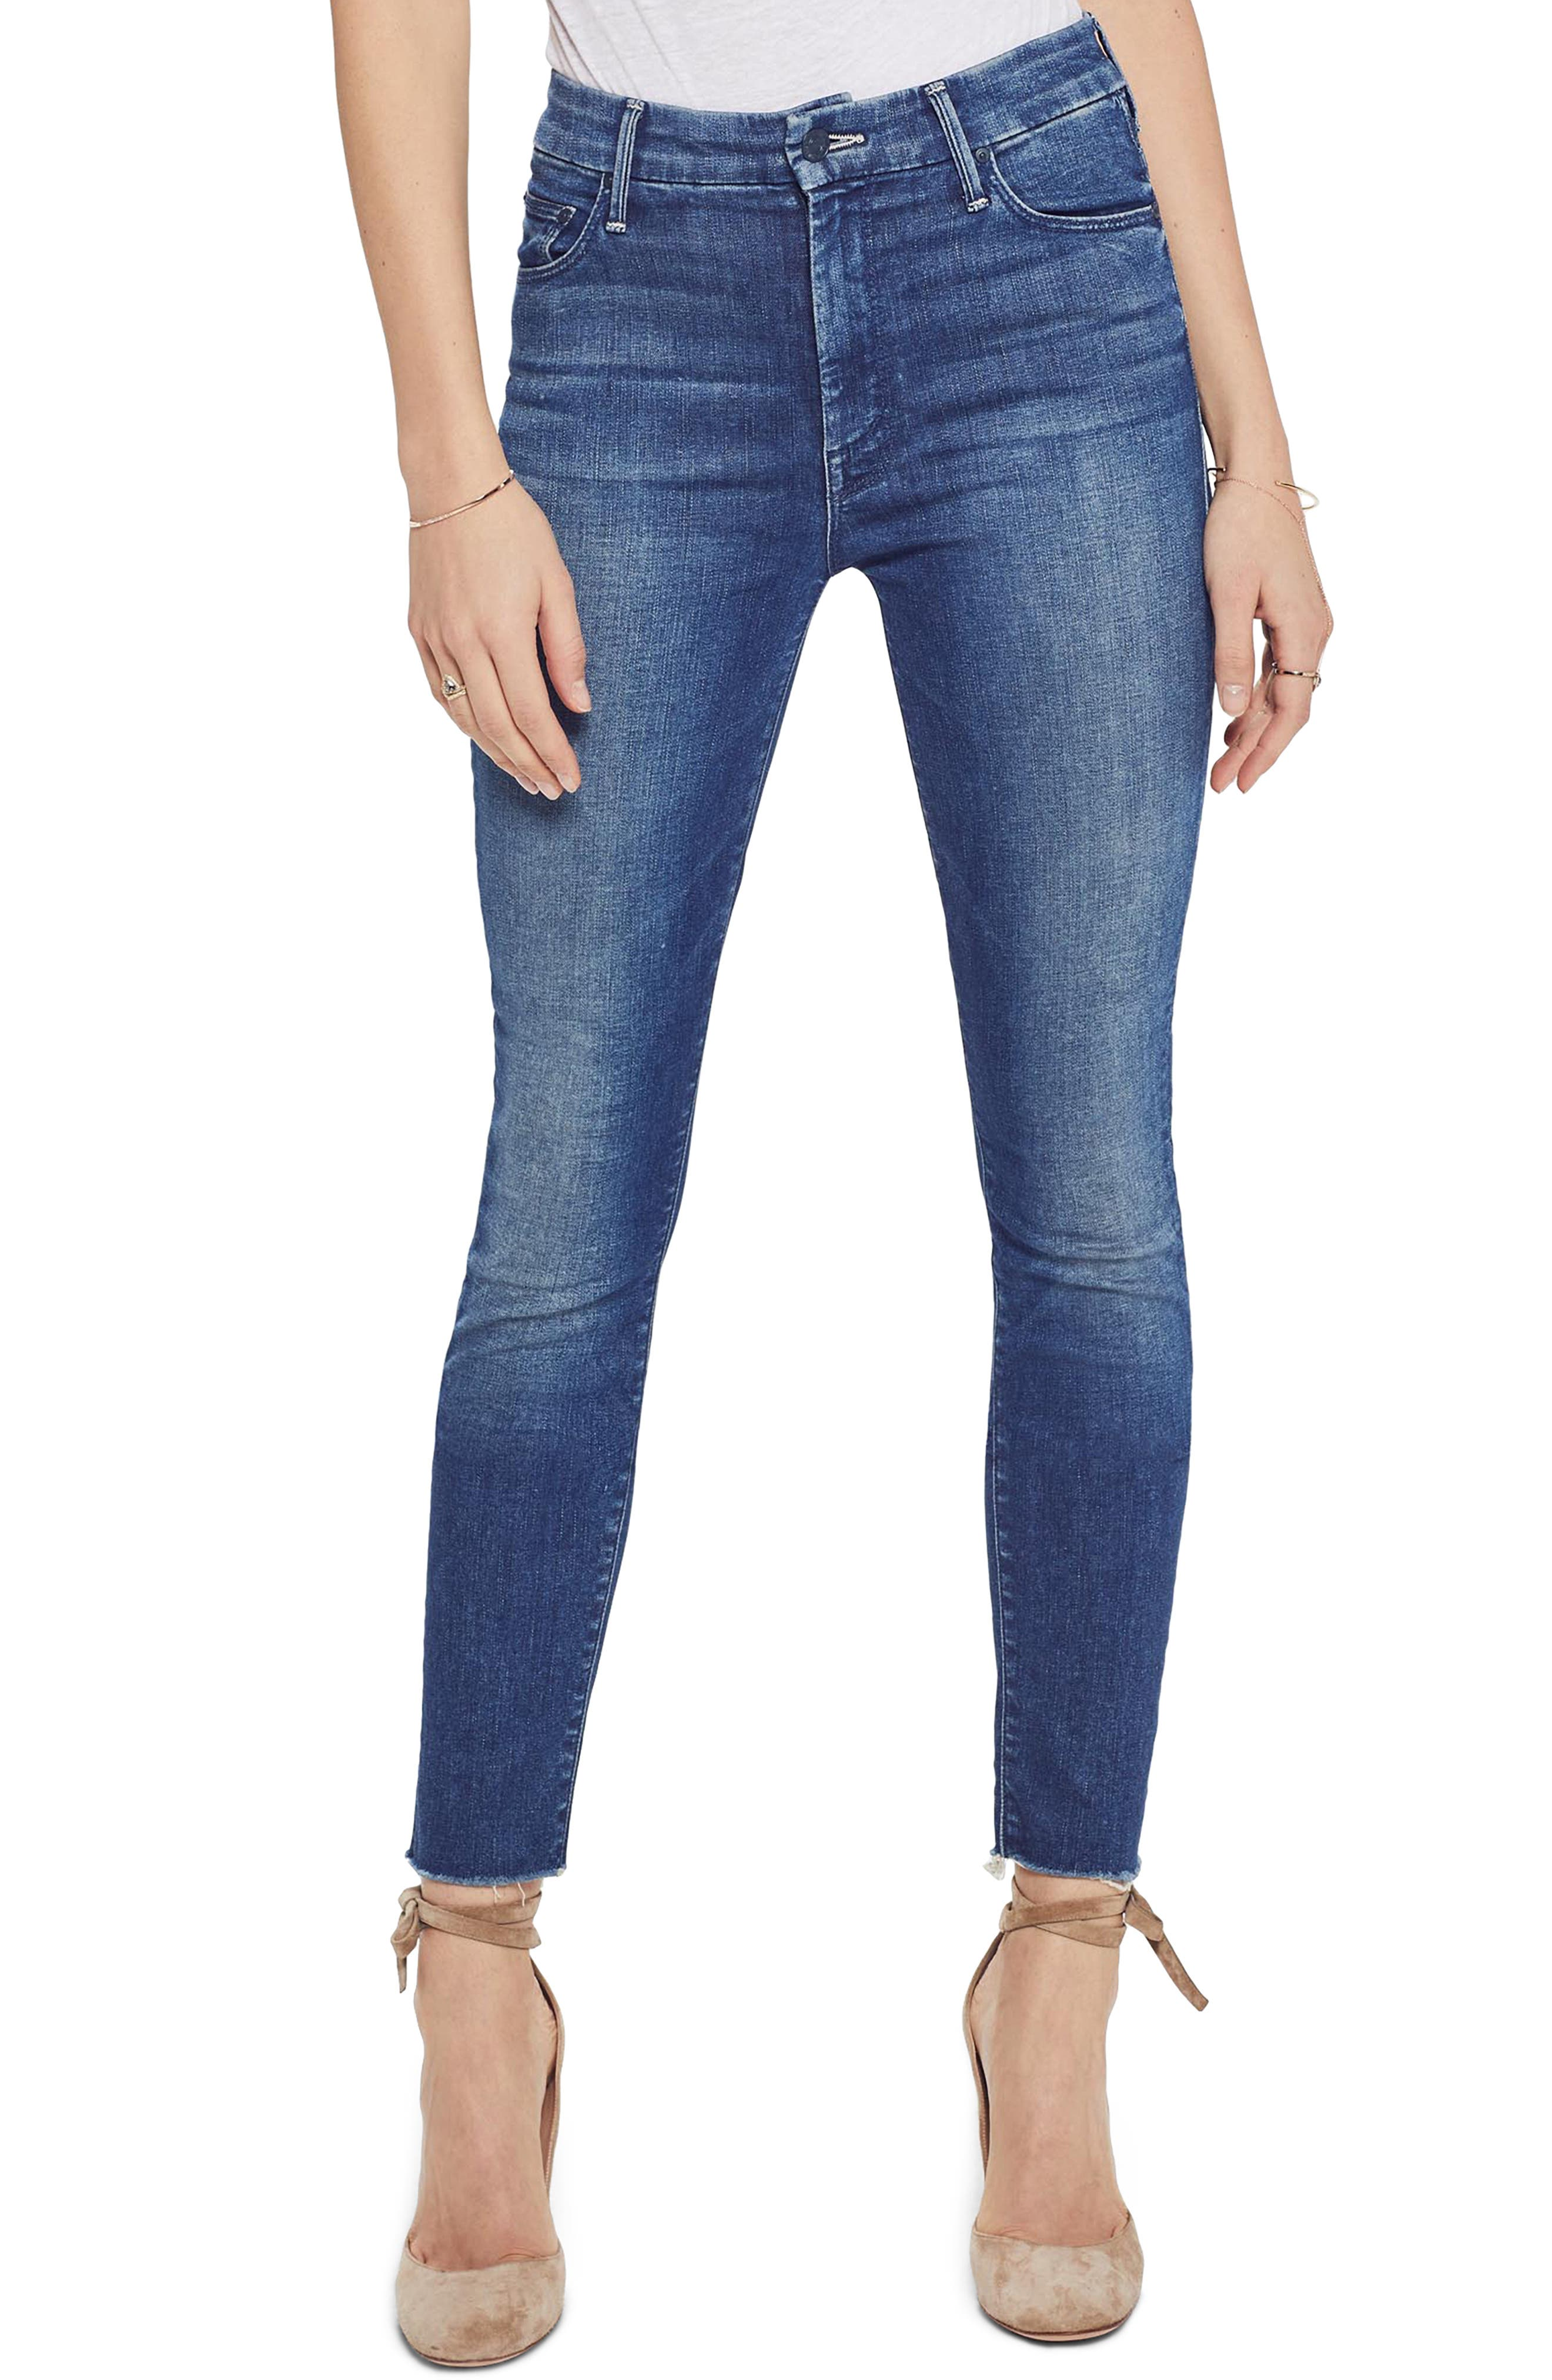 MOTHER The Looker High Waist Frayed Ankle Skinny Jeans, Main, color, LURE ME IN